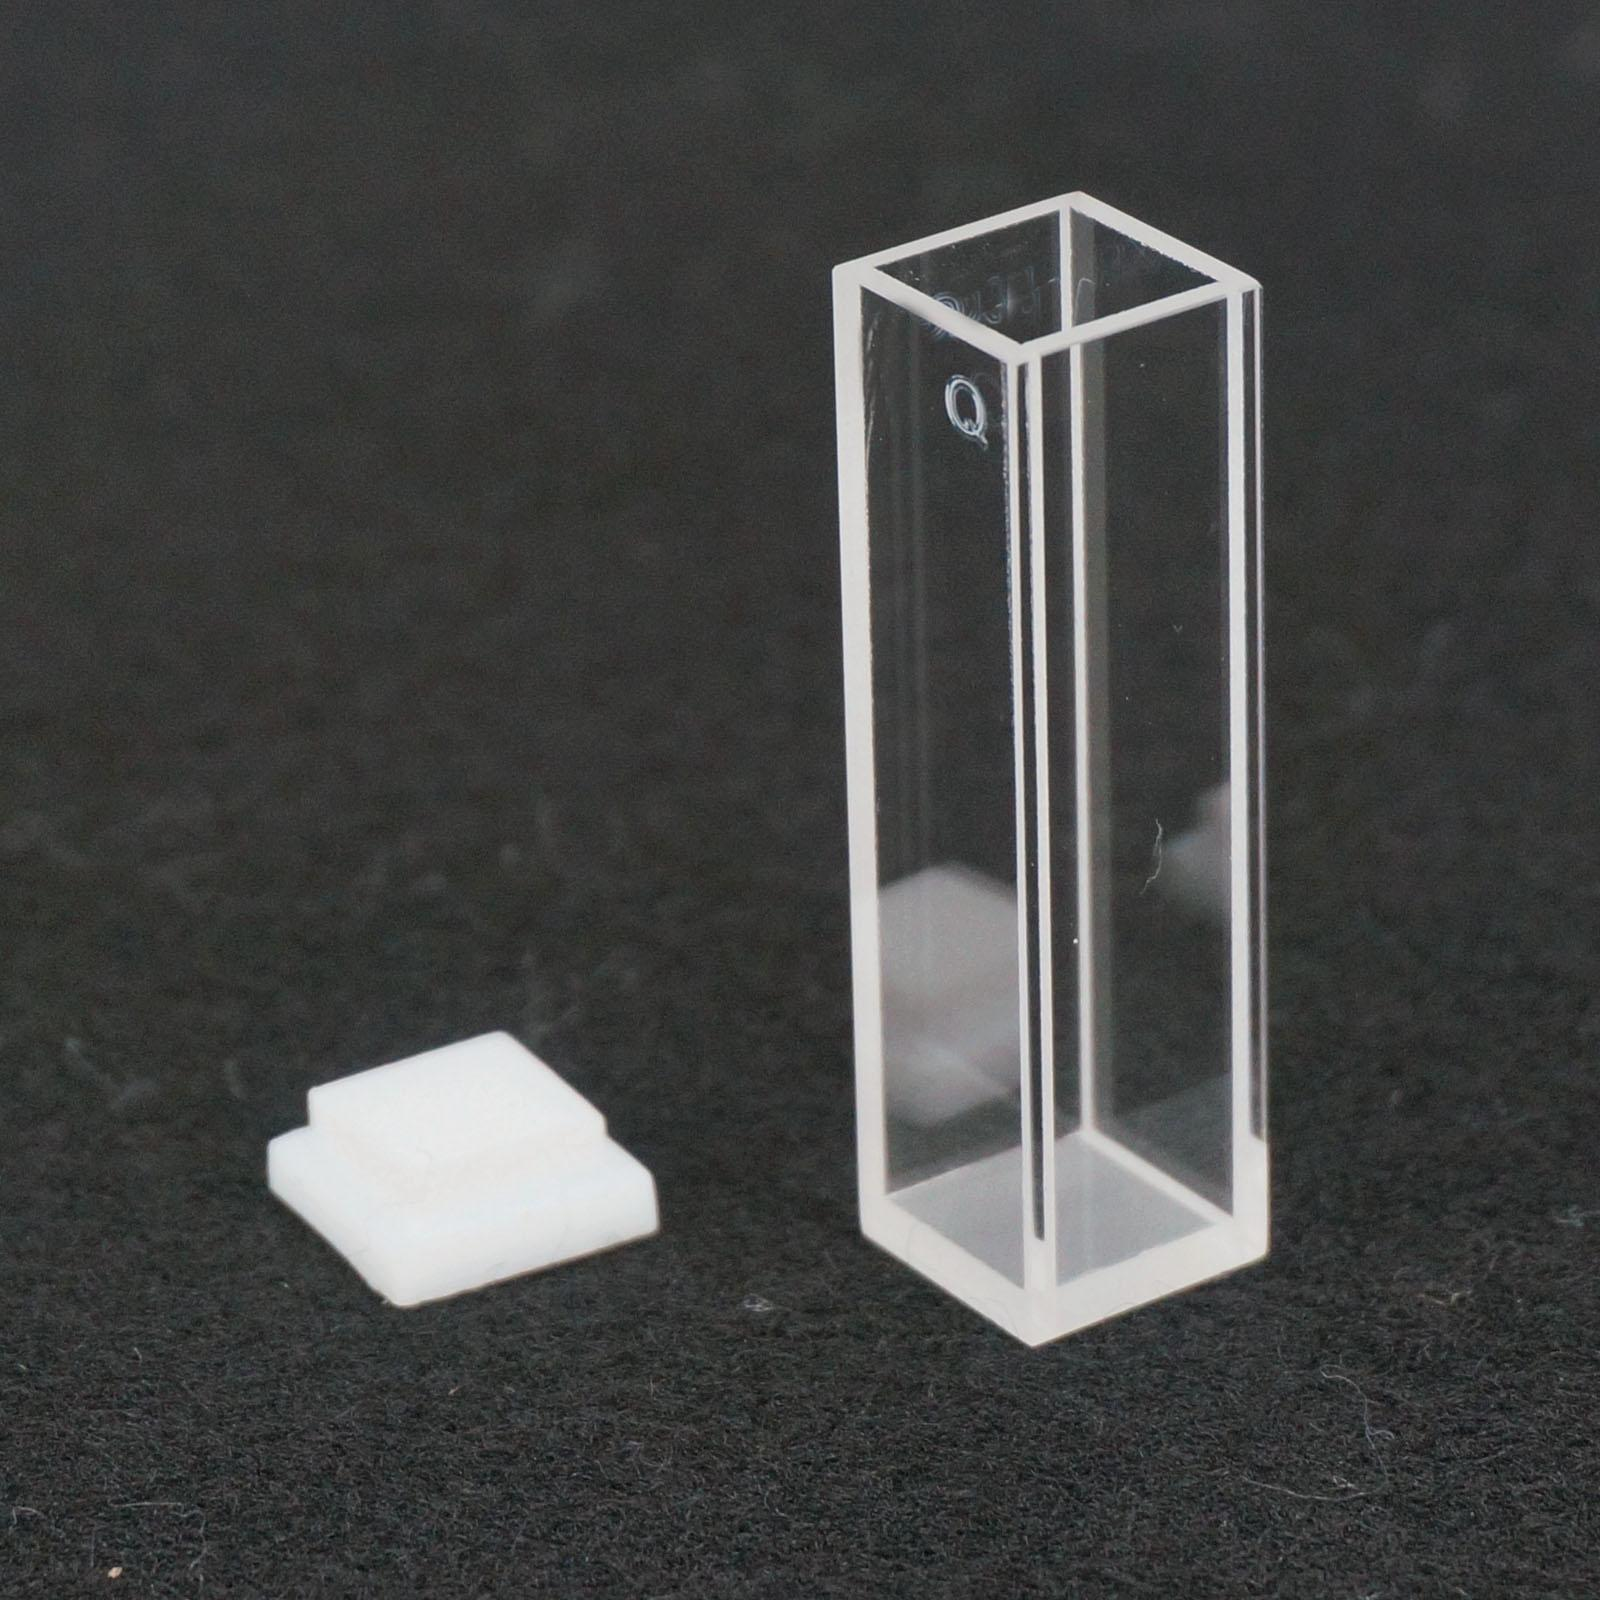 3.5ml 10mm Path JGS1 Quartz Cuvette Cell With Lid For Fluorescence Spectrometer new upgrade 810 model bga stencil bga reballing stencil kit with direct heating reballing station replace 715 pcs